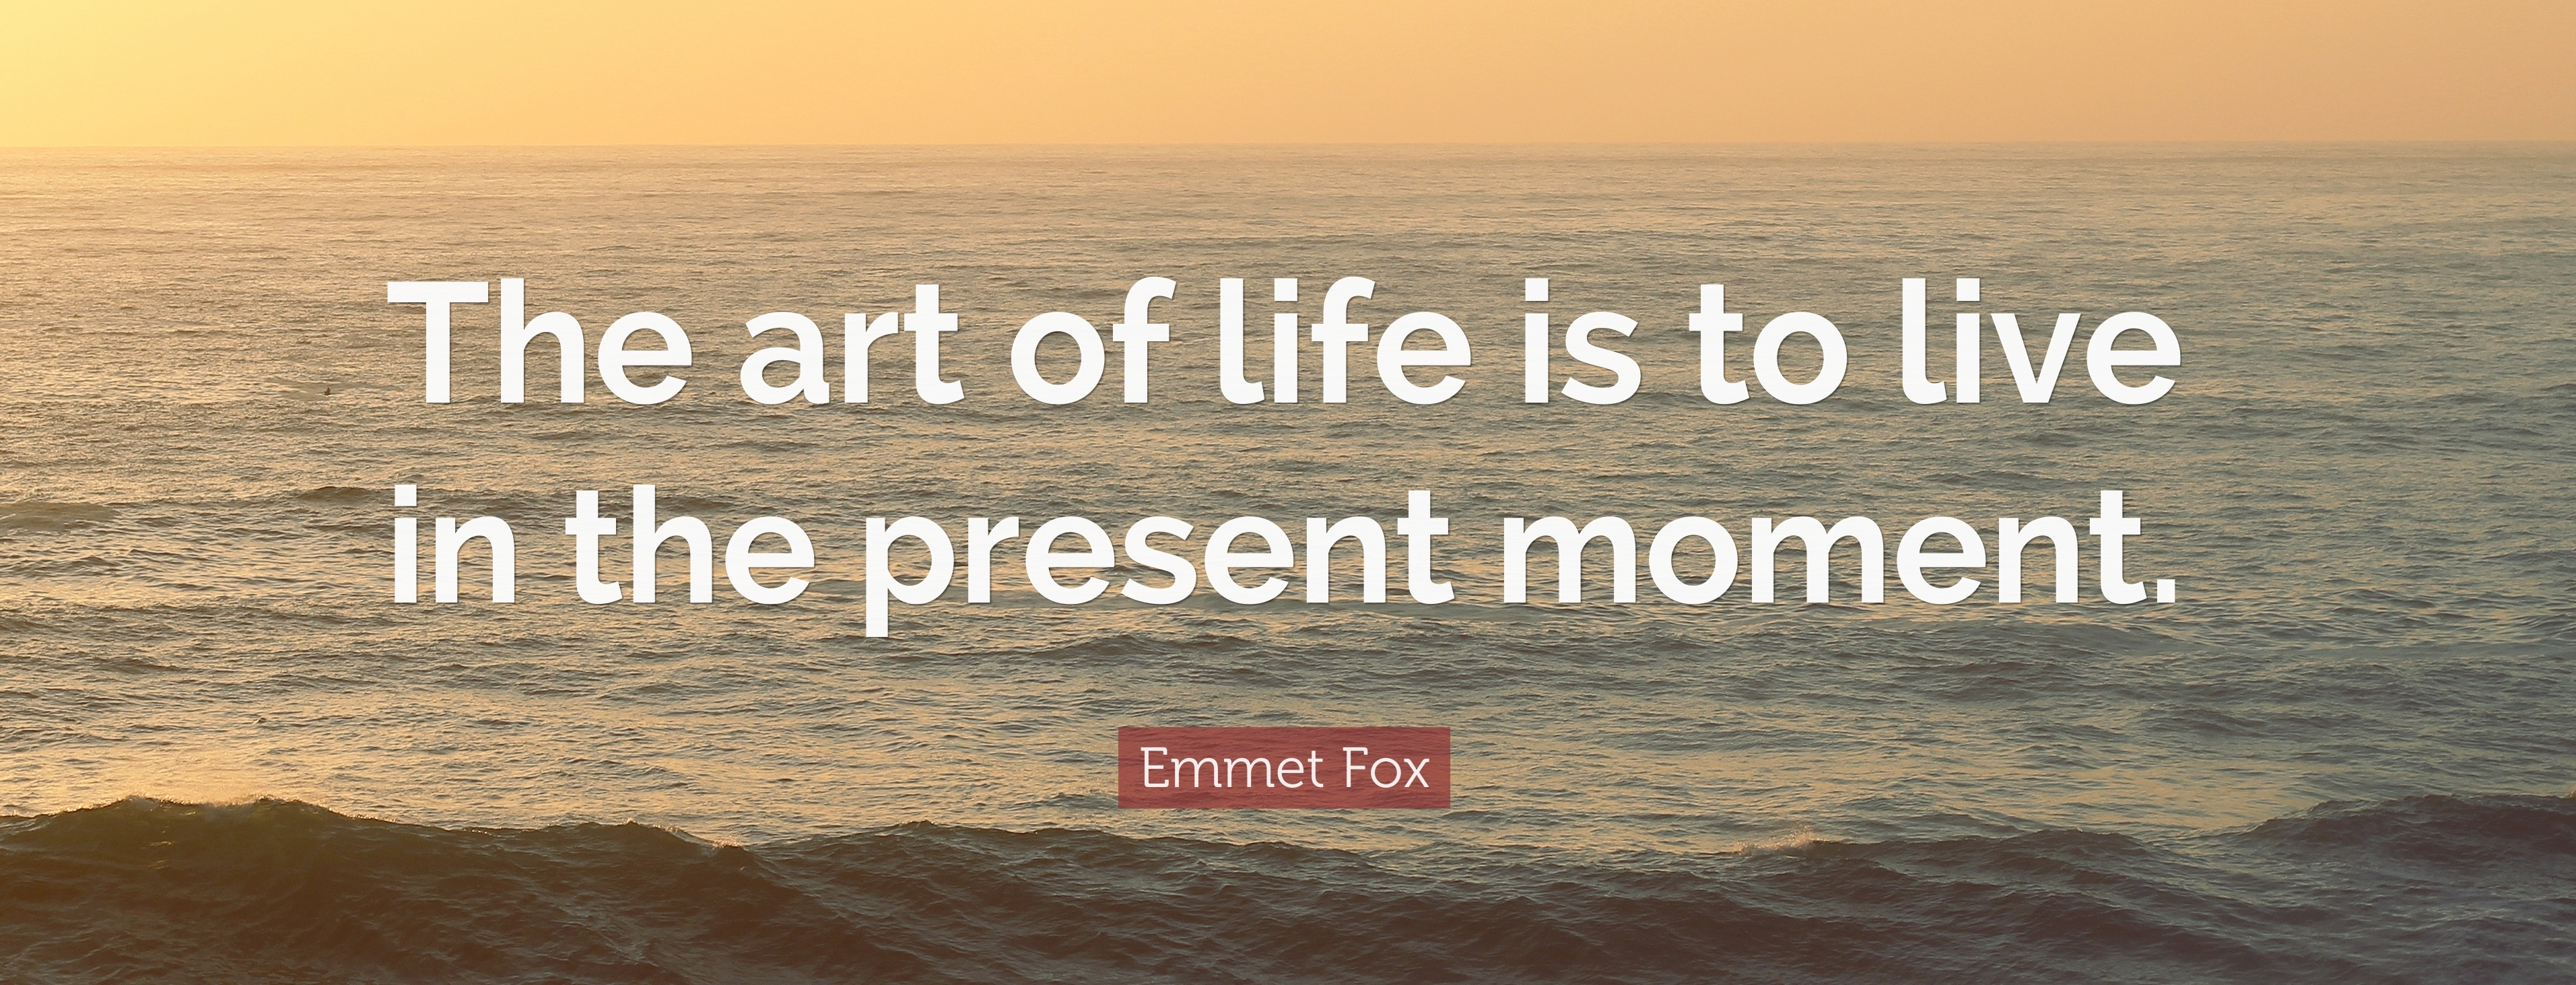 emmet fox present moment quote - The Joy Within